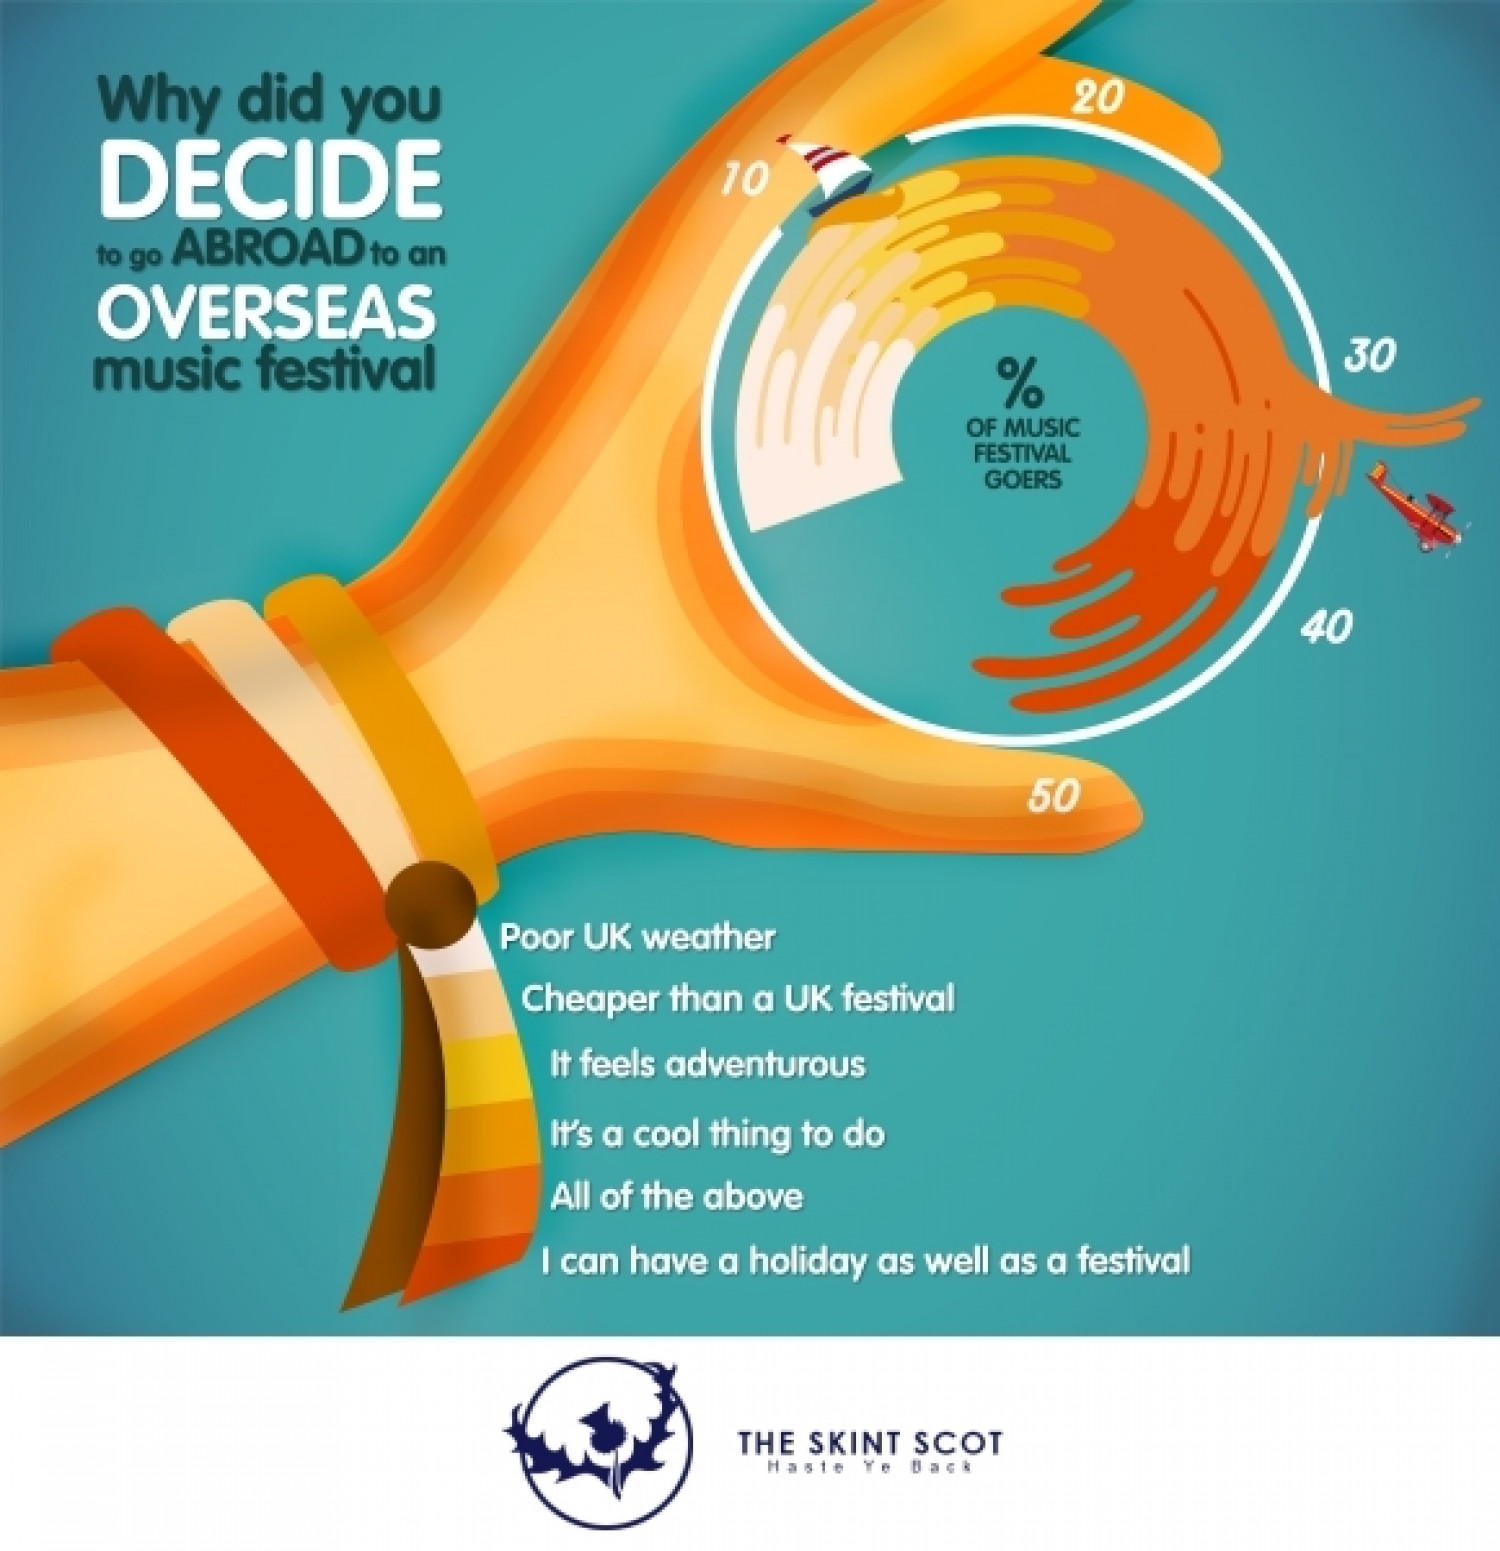 Why Did You Decide to Go Abroad to an Overseas Music Festival Infographic